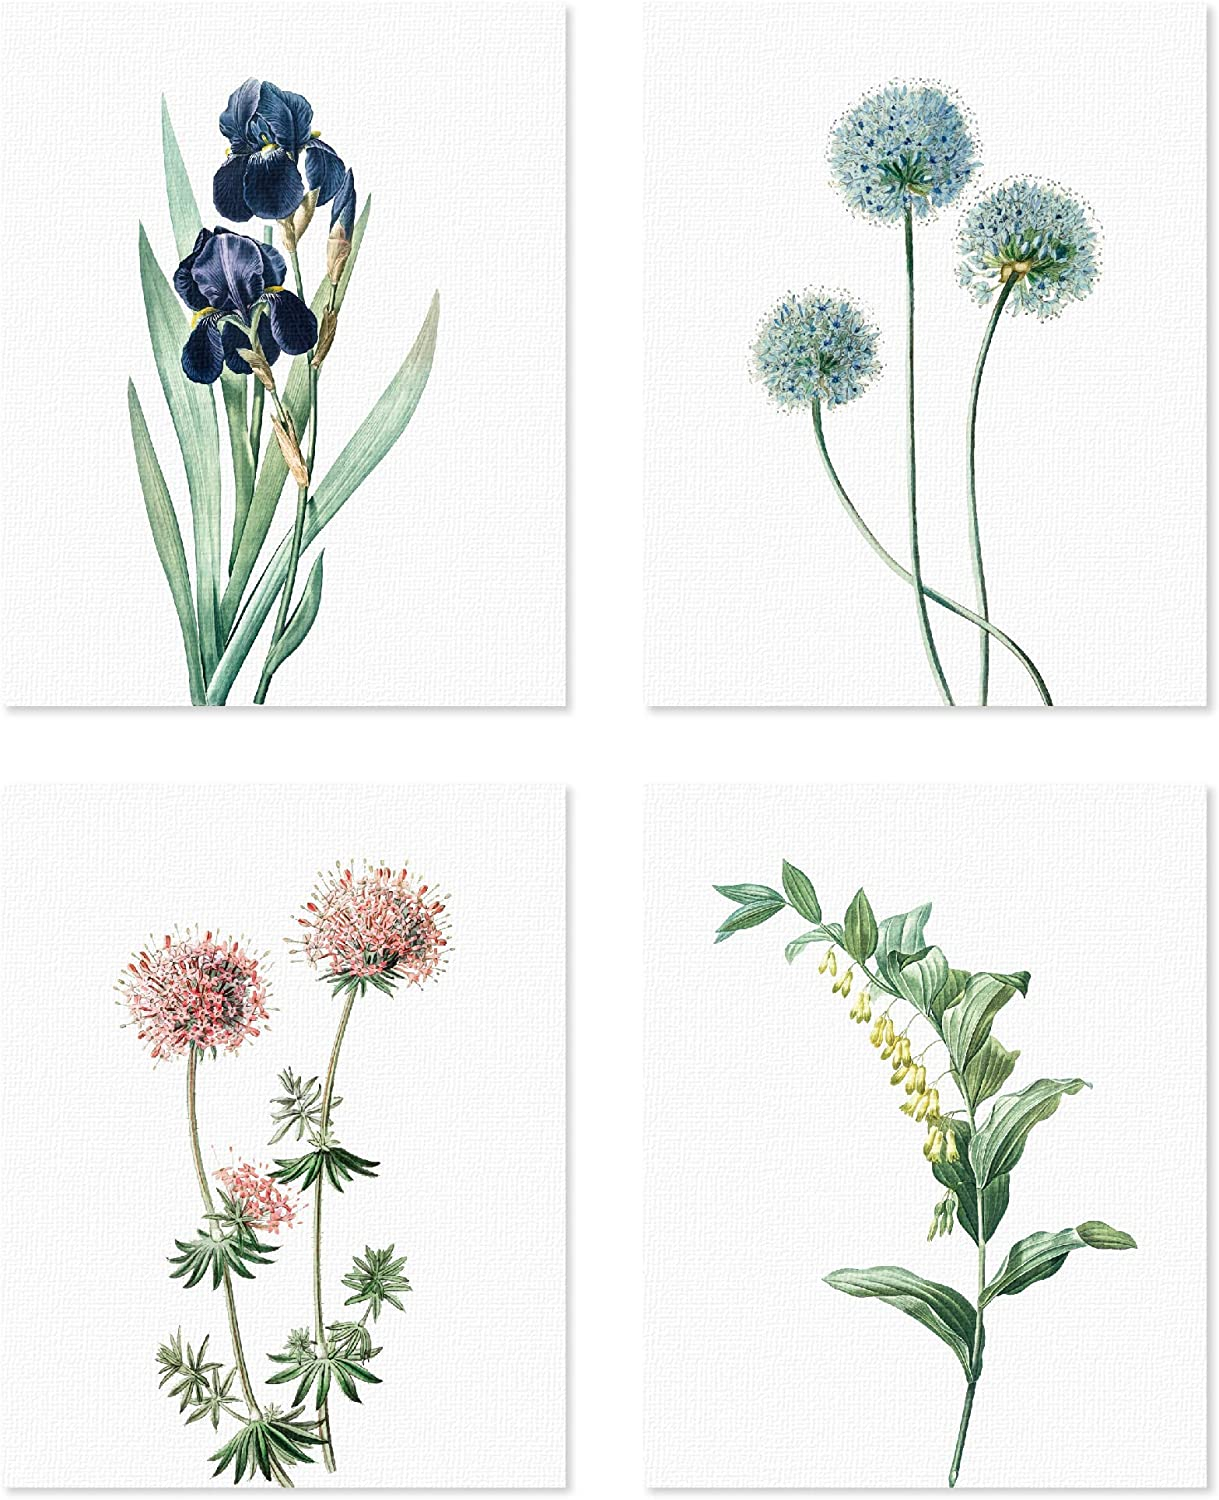 PapaKit Botanical Floral Garden - 4 Piece 8x10 inches Unframed Canvas Painting Print Set Wall Art Decoration